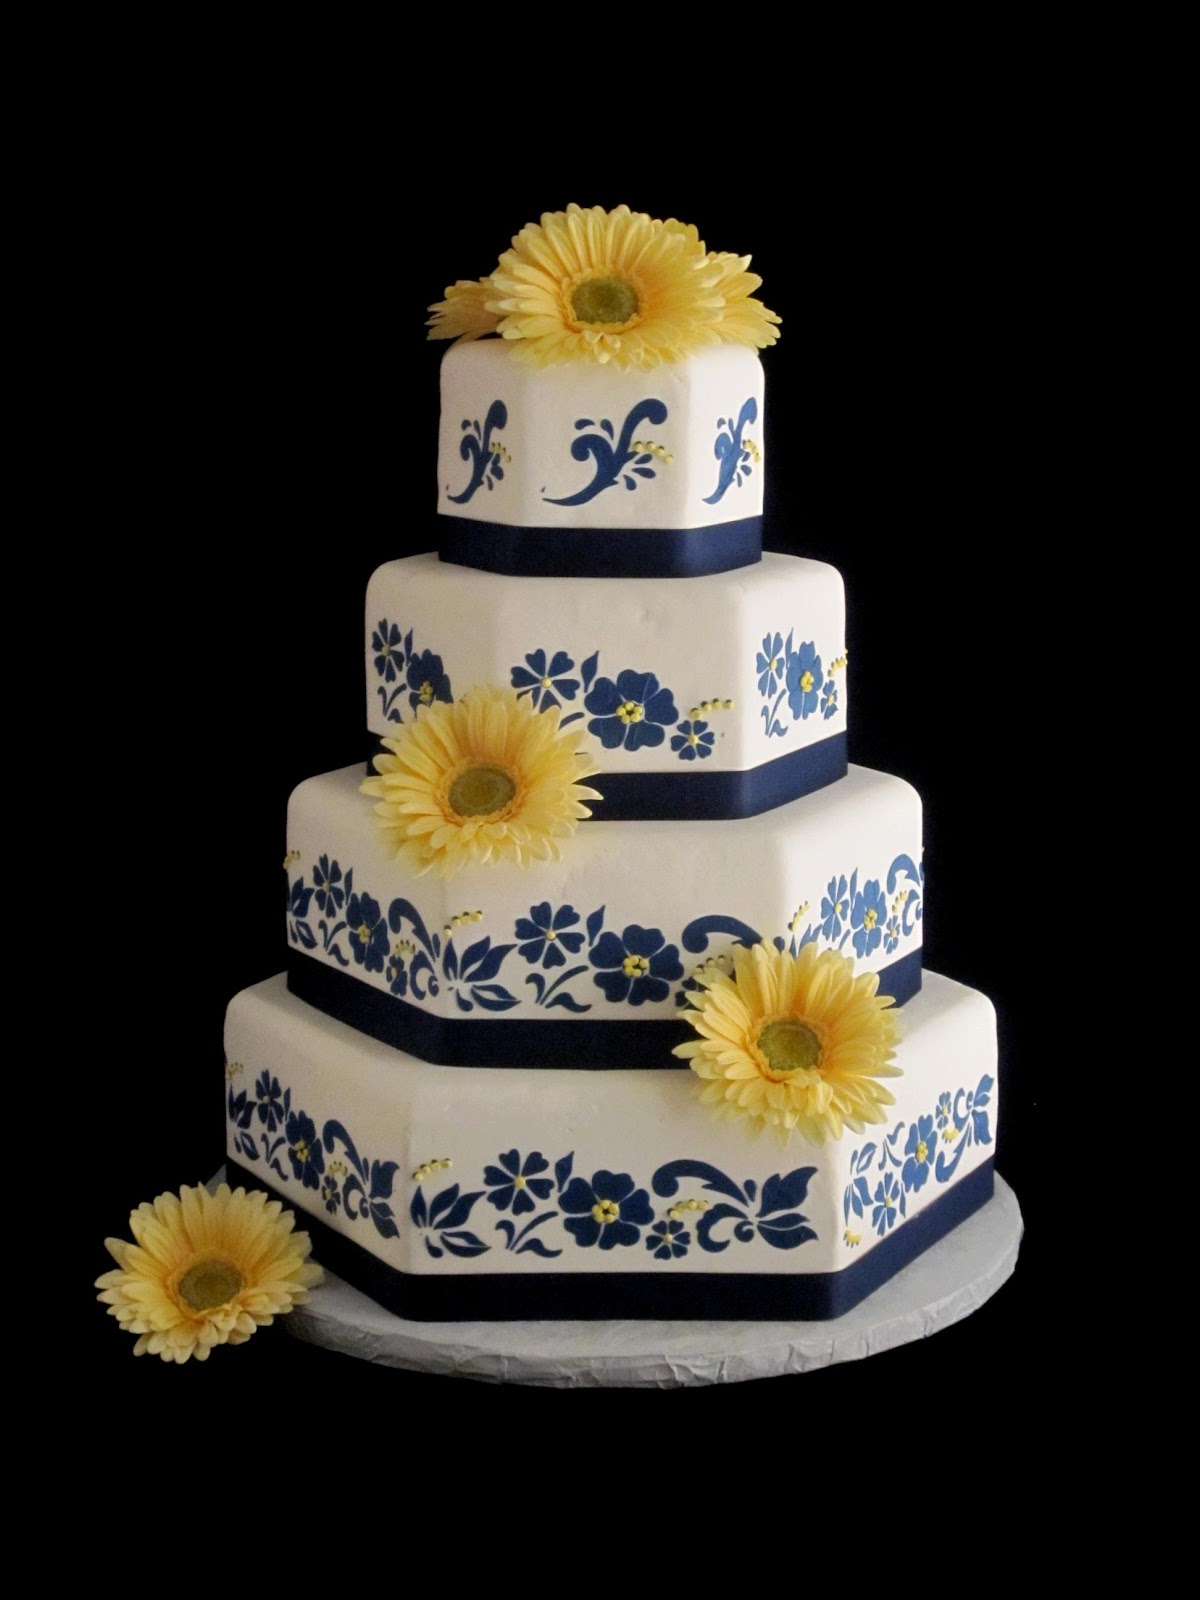 wedding cakes navy blue and yellow navy cakes cake ideas and designs 25069